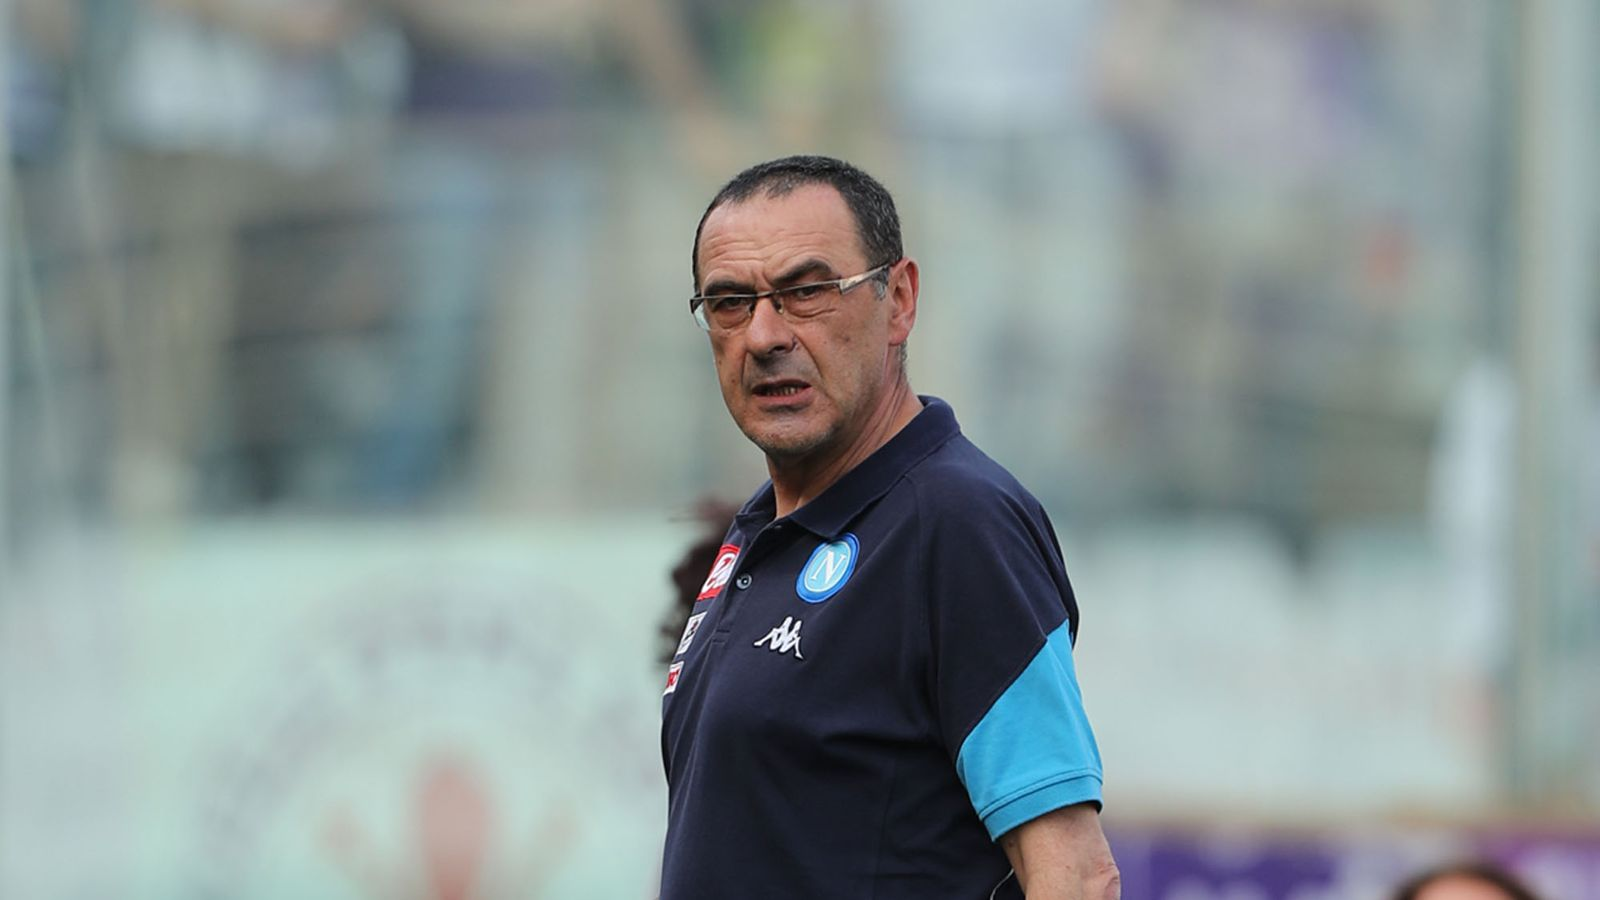 Sarri: Chelsea Have General Agreement With Maurizio Sarri To